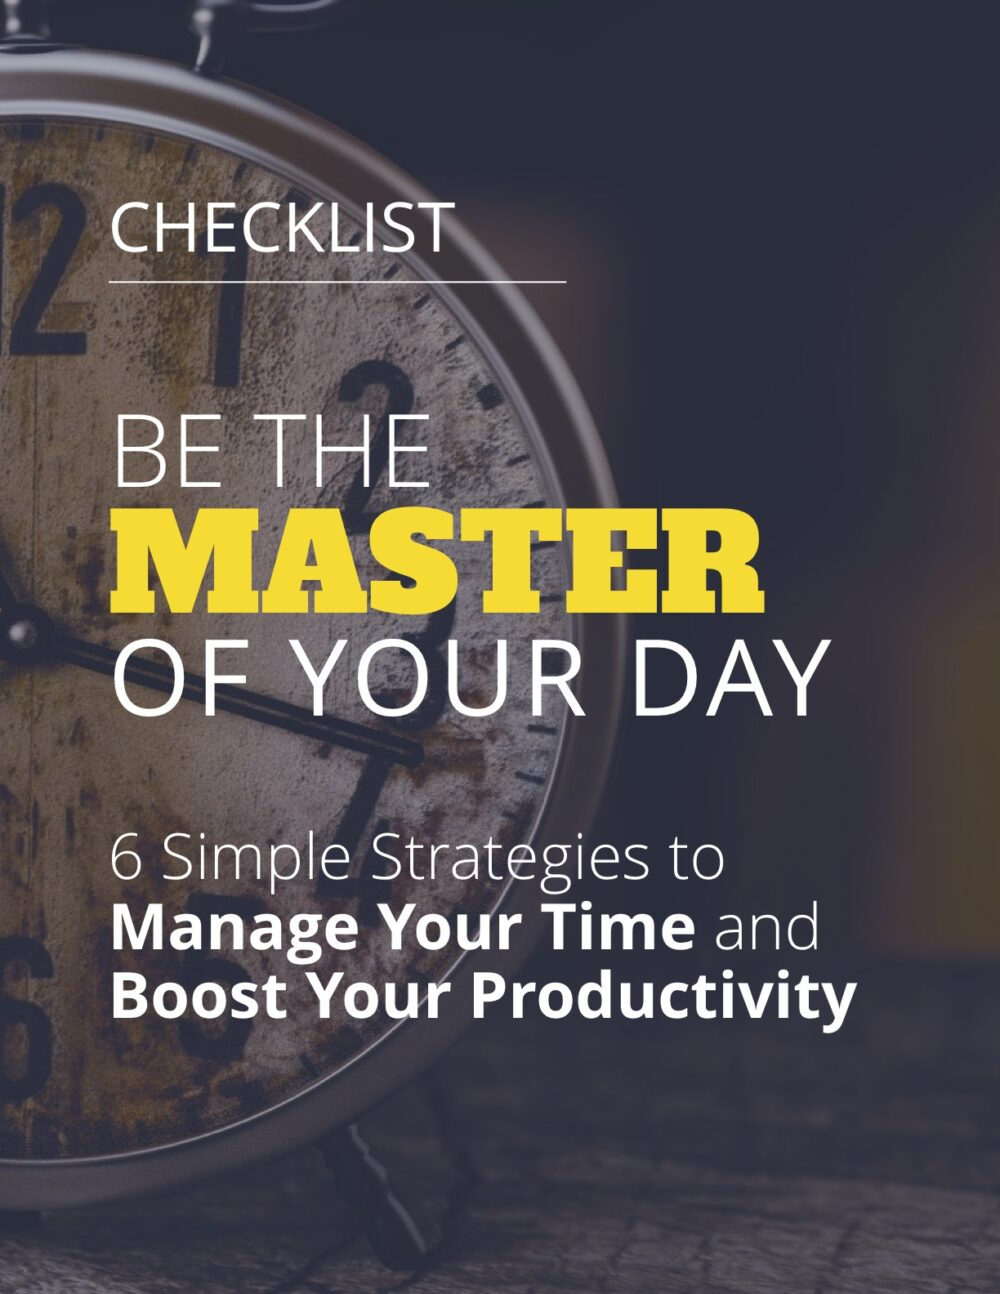 Be the Master of Your Day - Checklist